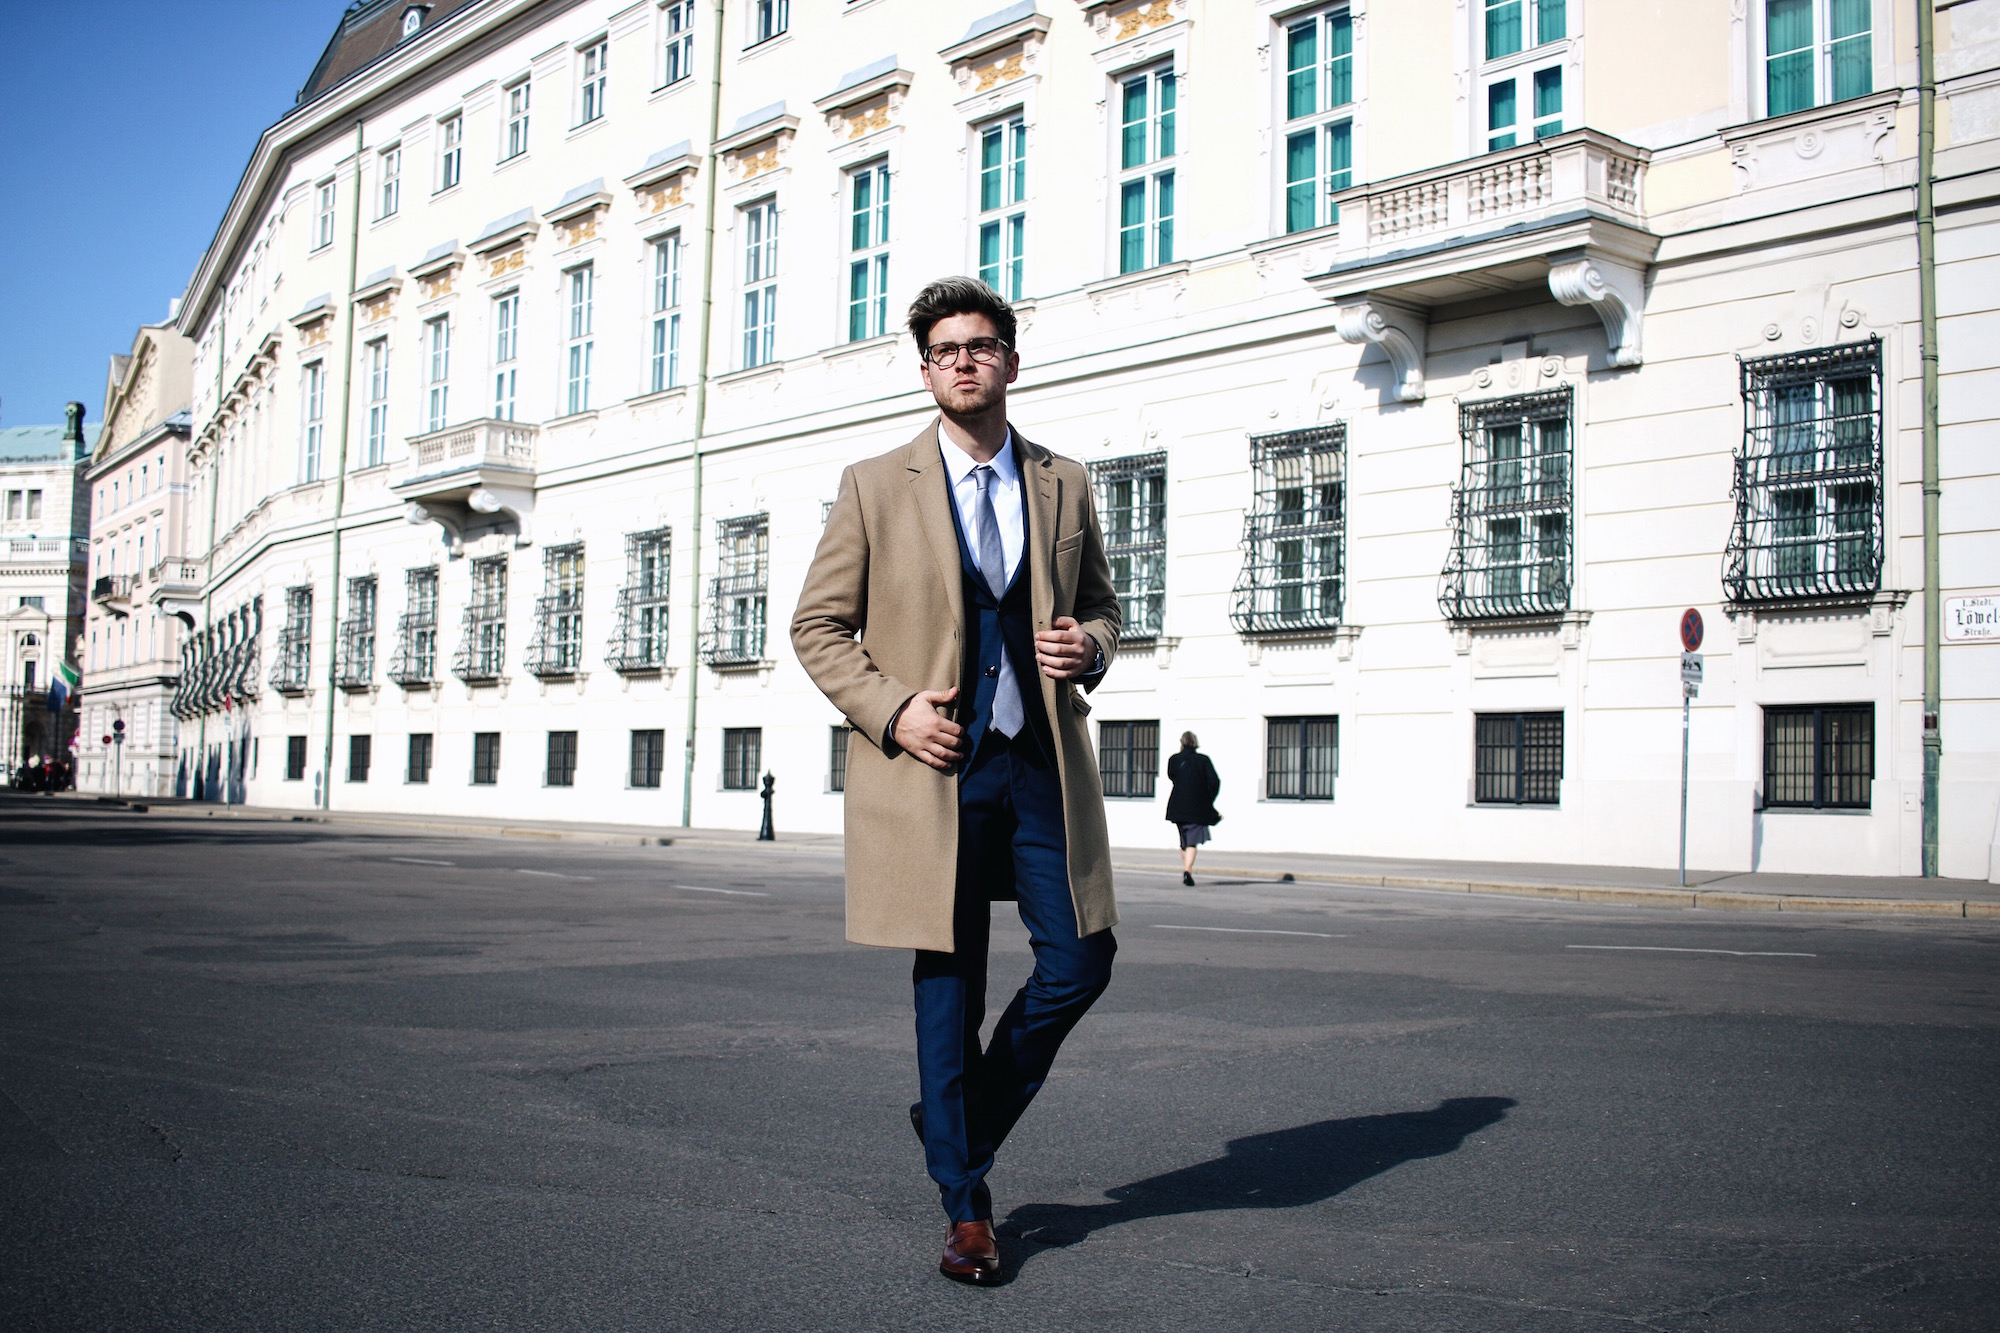 Tiger-Of-Sweden-Suit-Mix-Match_Three-ways-to-wear-a-suit_Meanwhile-in-Awesometown_Austrian-Mens-Fashion-and-Lifestyle-Blogger22